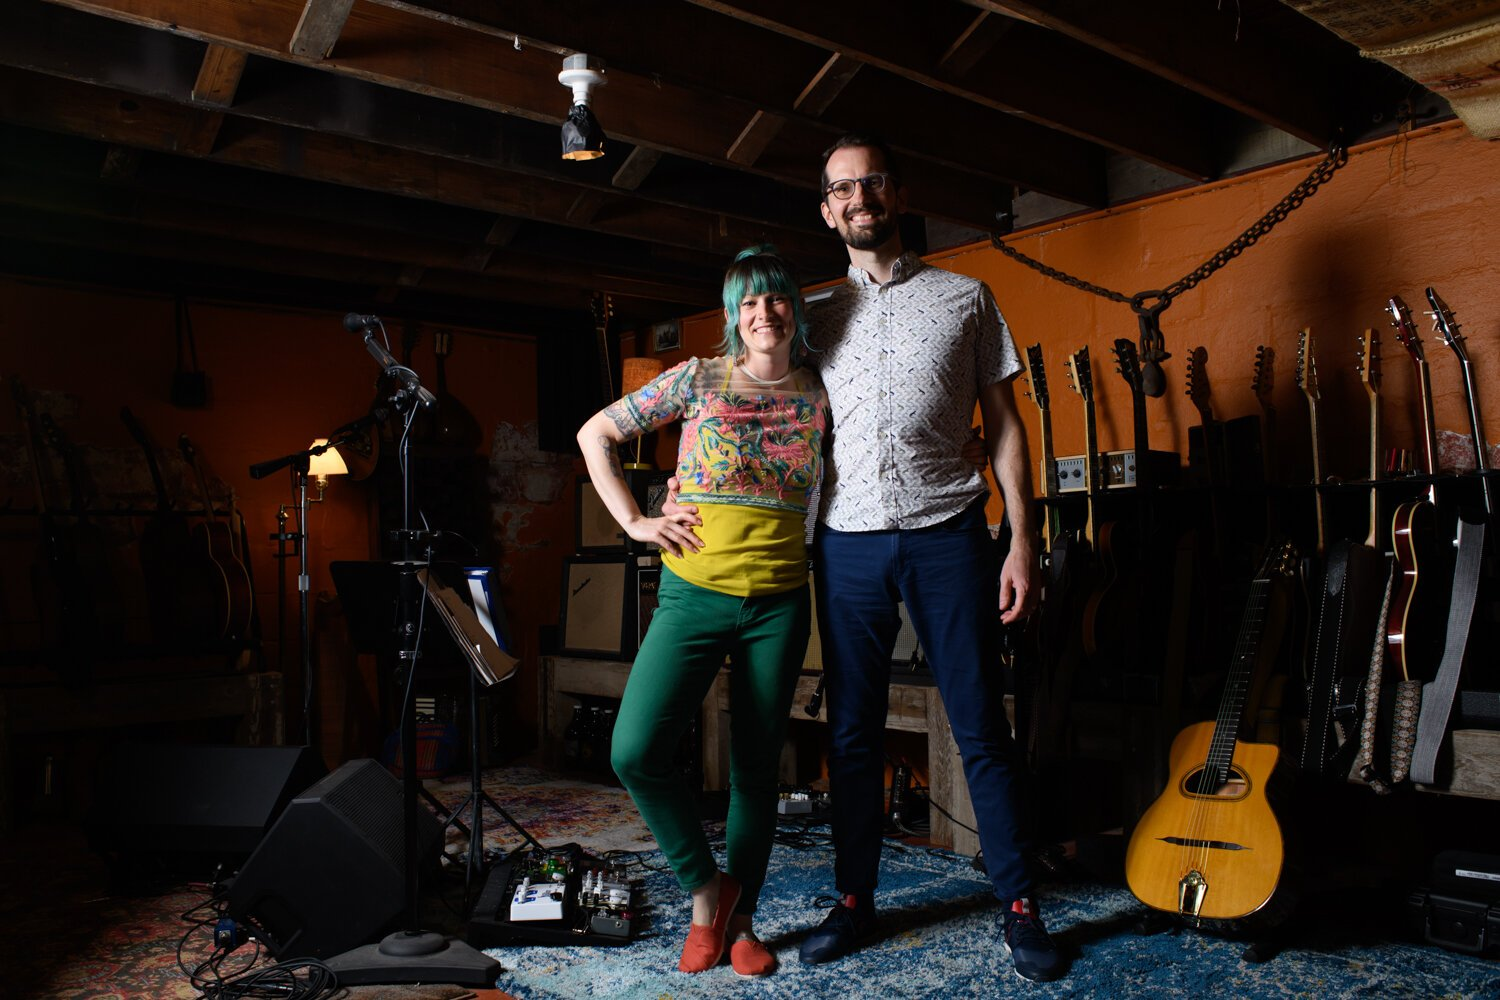 Lyndsy Rae Porter and Ben Porter are both French musicians who play in a band together and separately.